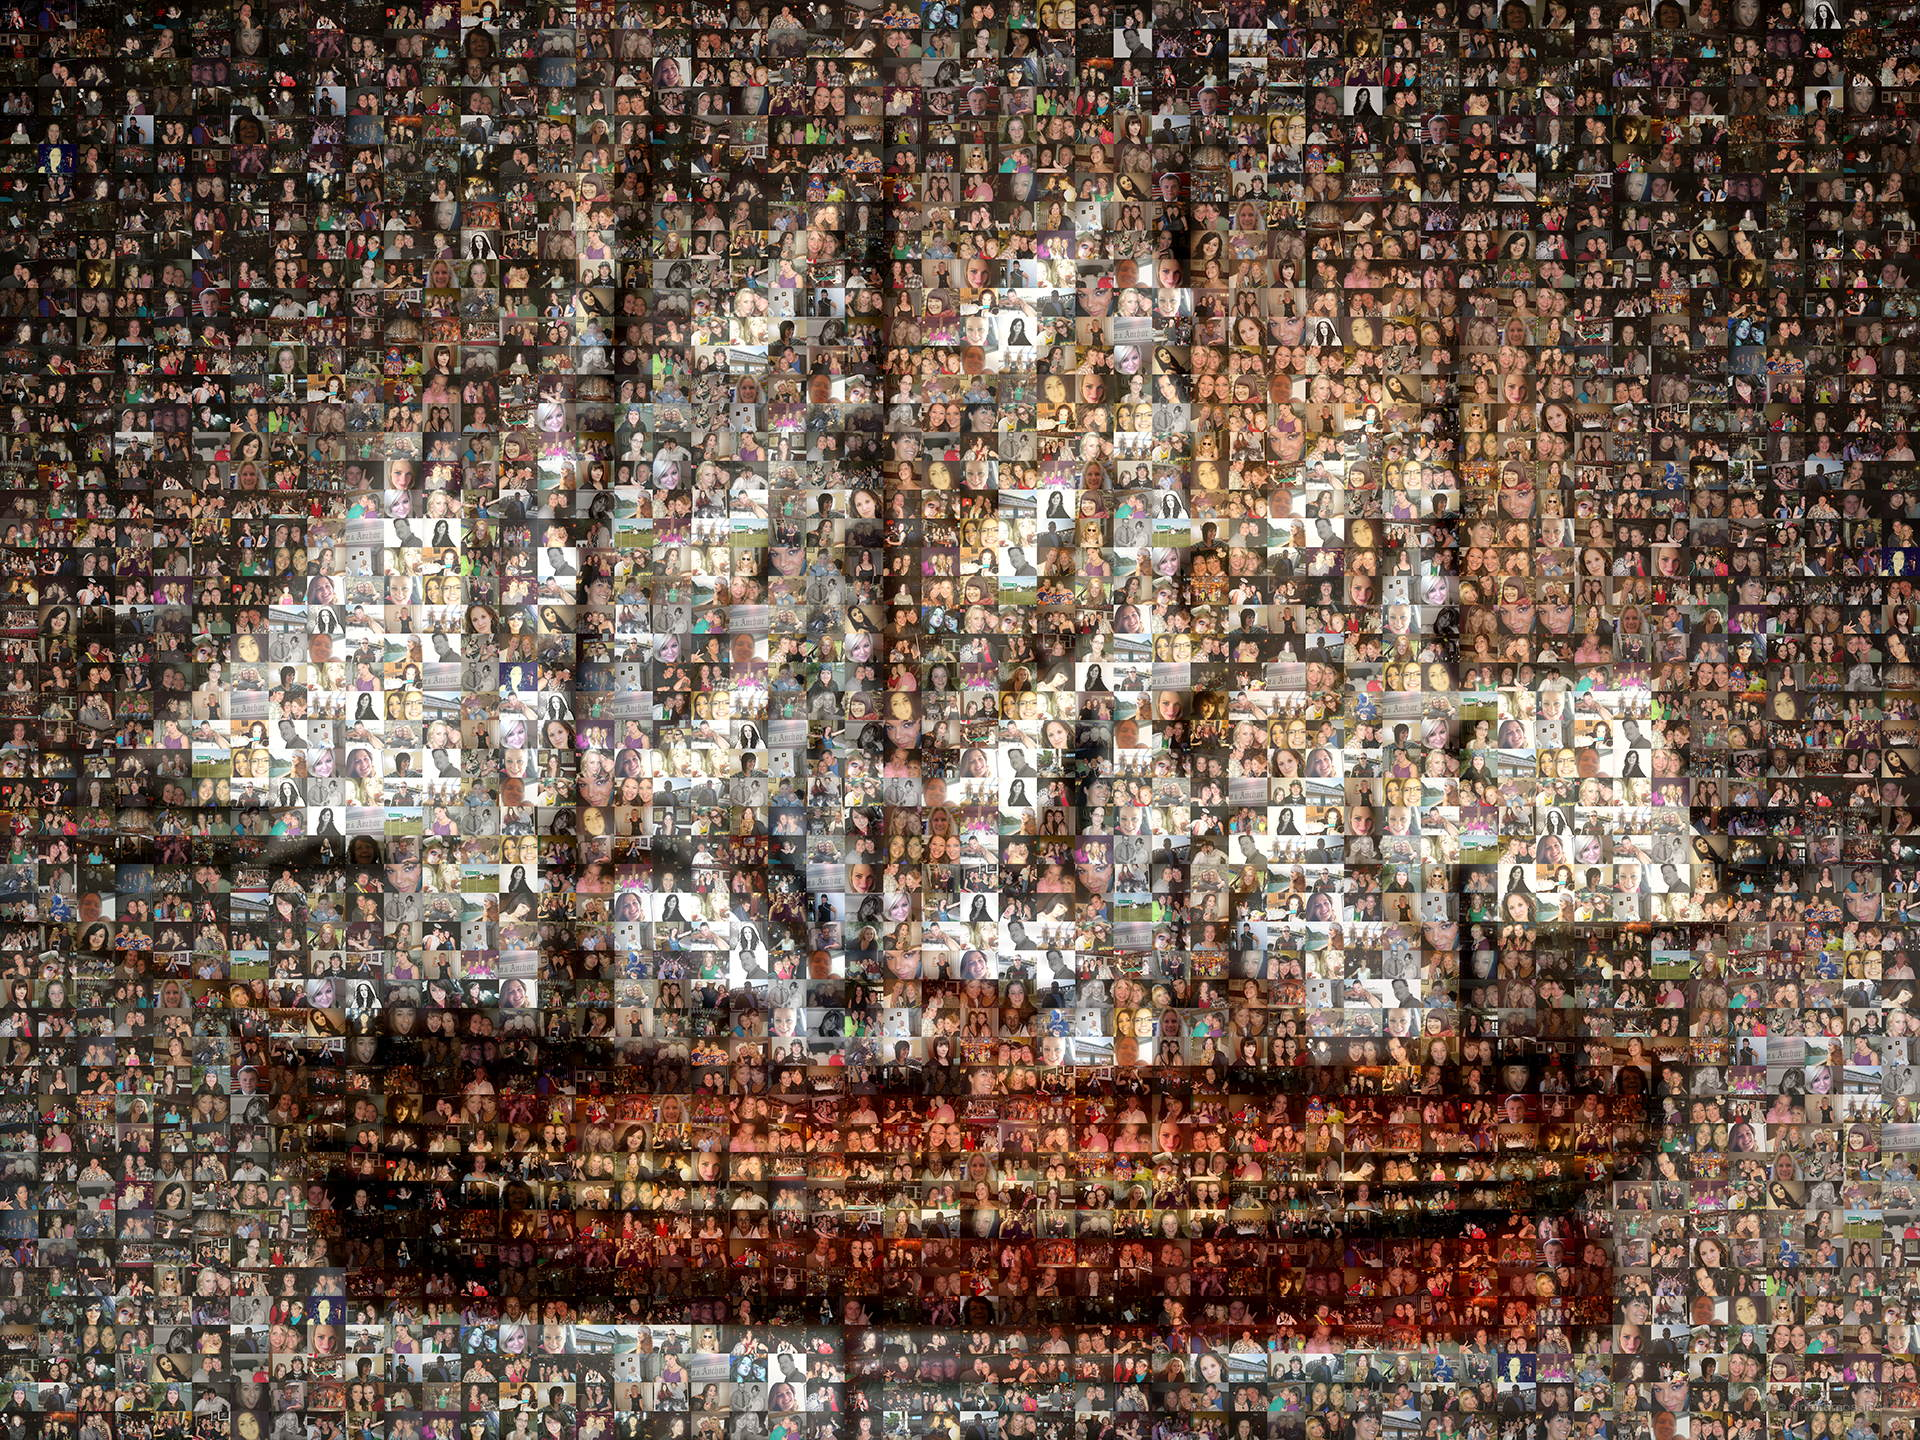 photo mosaic created using 252 photos of friends